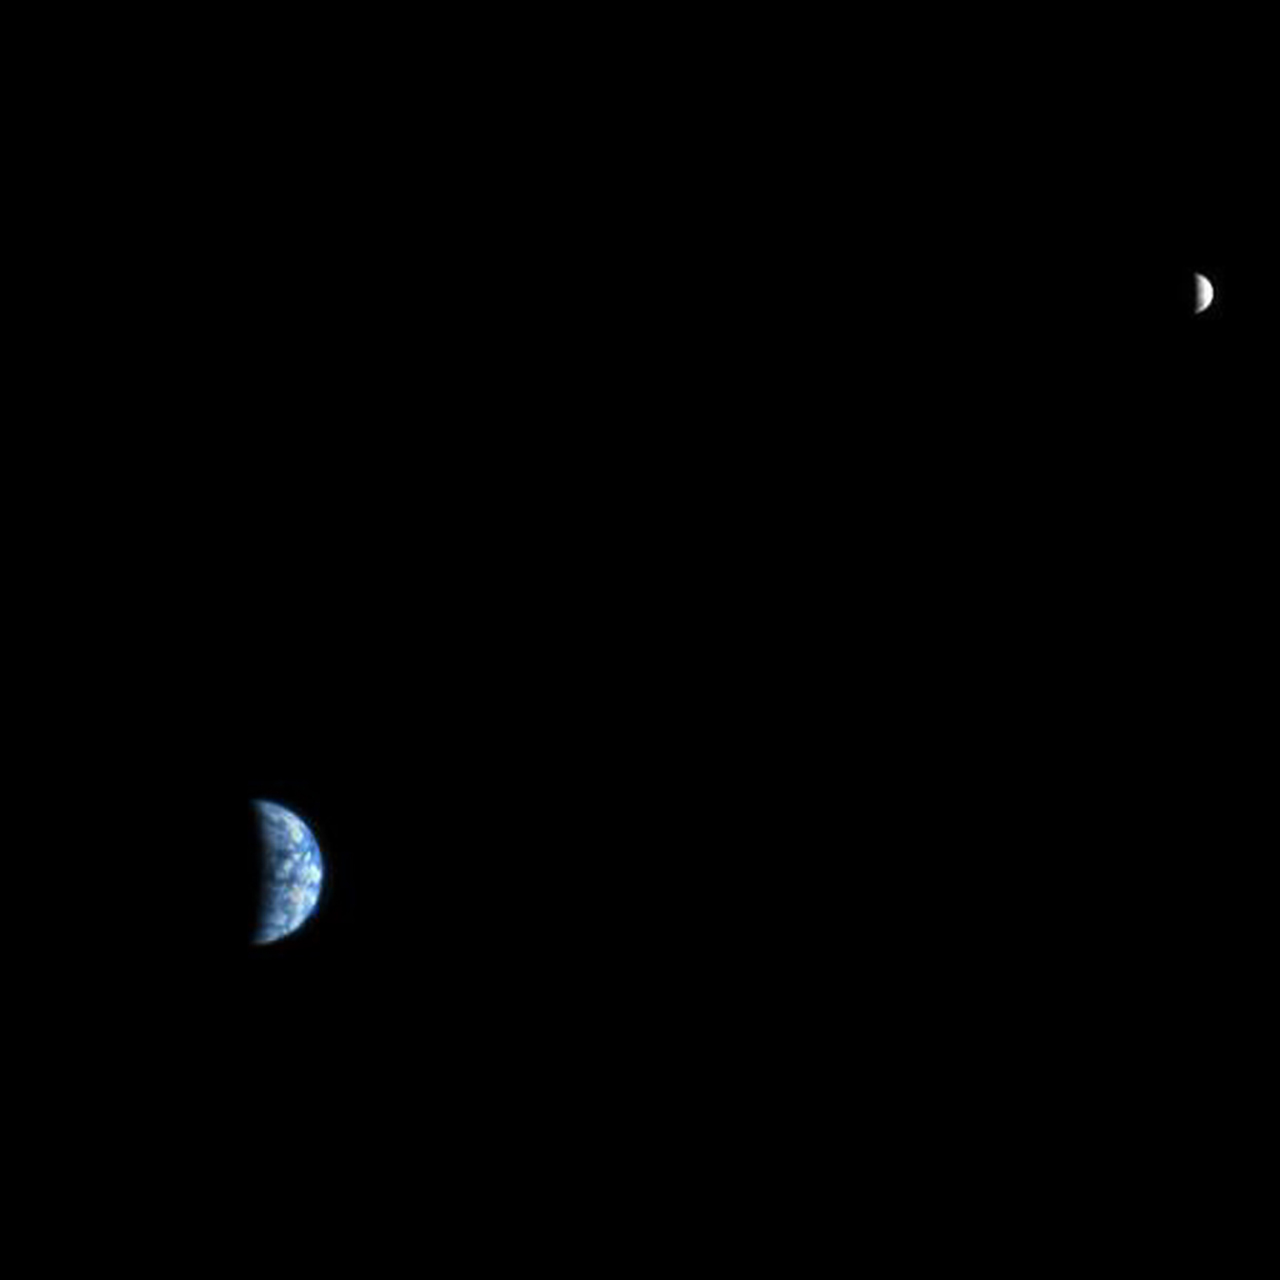 Earth and Moon as seen from Mars for photos of Earth from various points in space